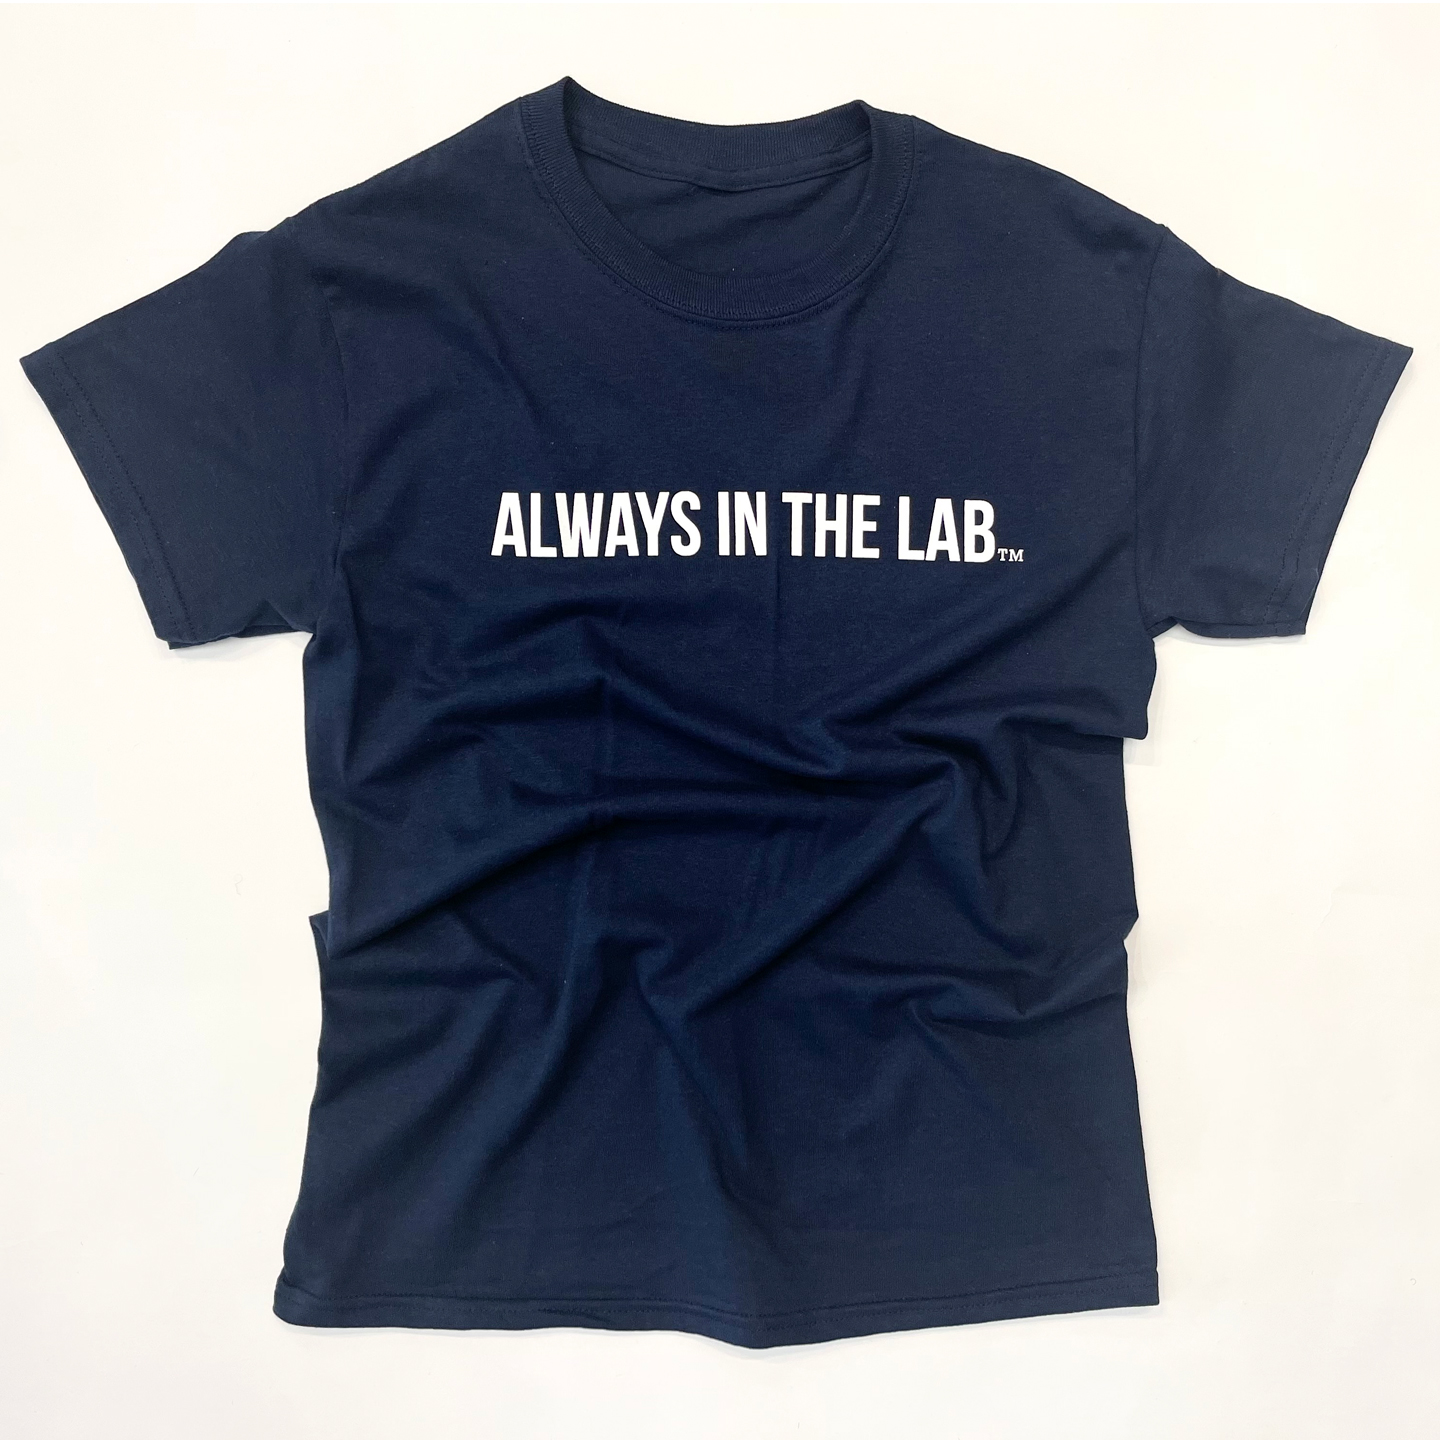 ALWAYS IN THE LAB NAVY TEE